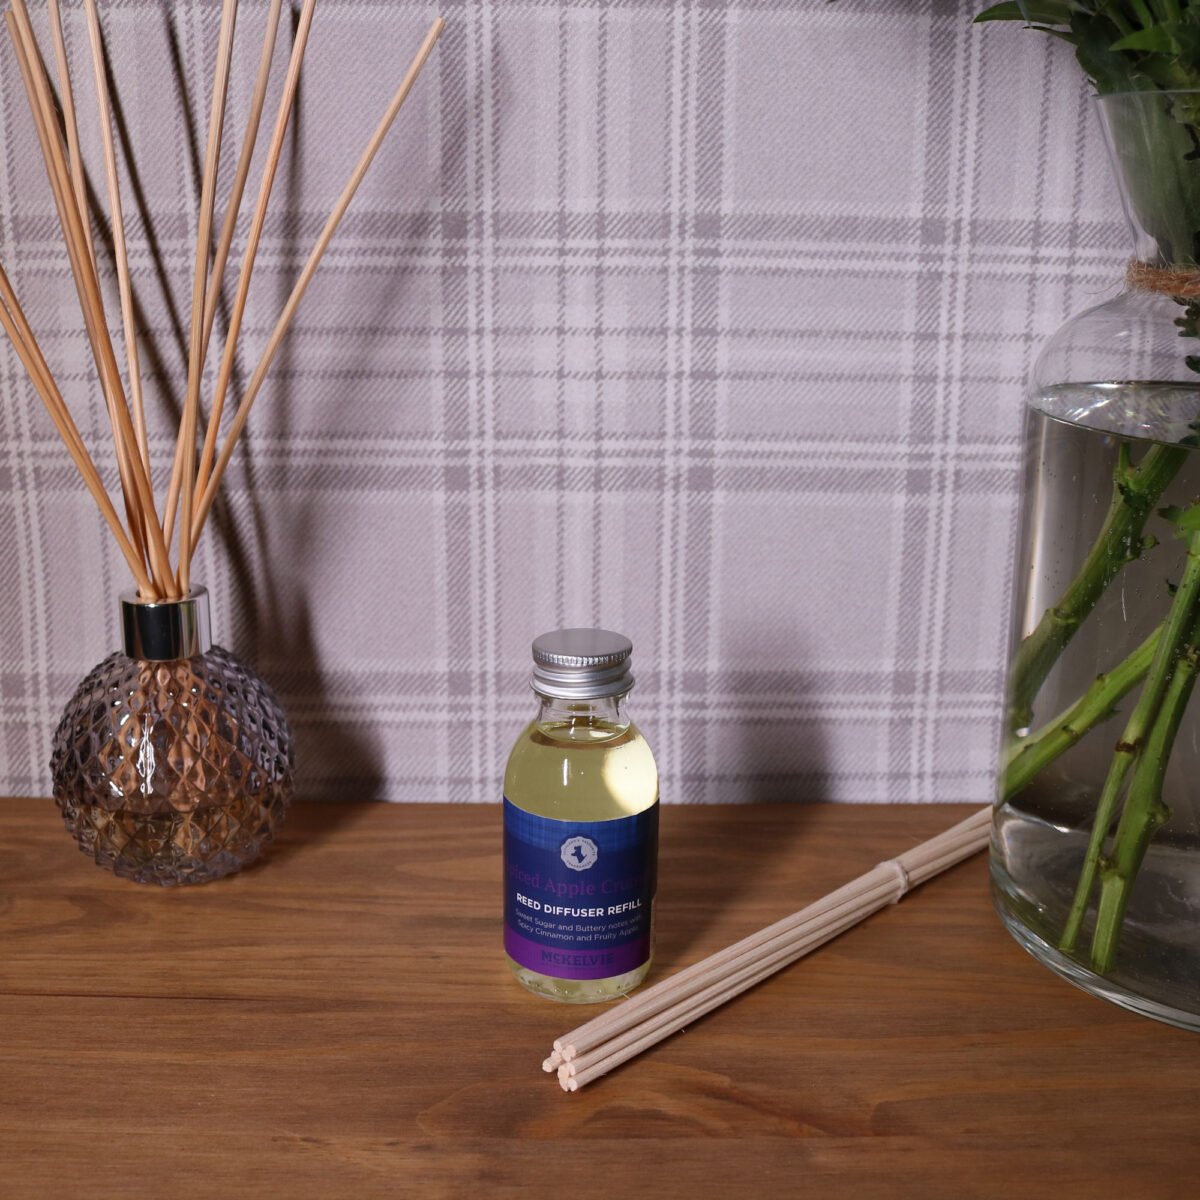 Spiced Apple Crumble Reed Diffuser Refill